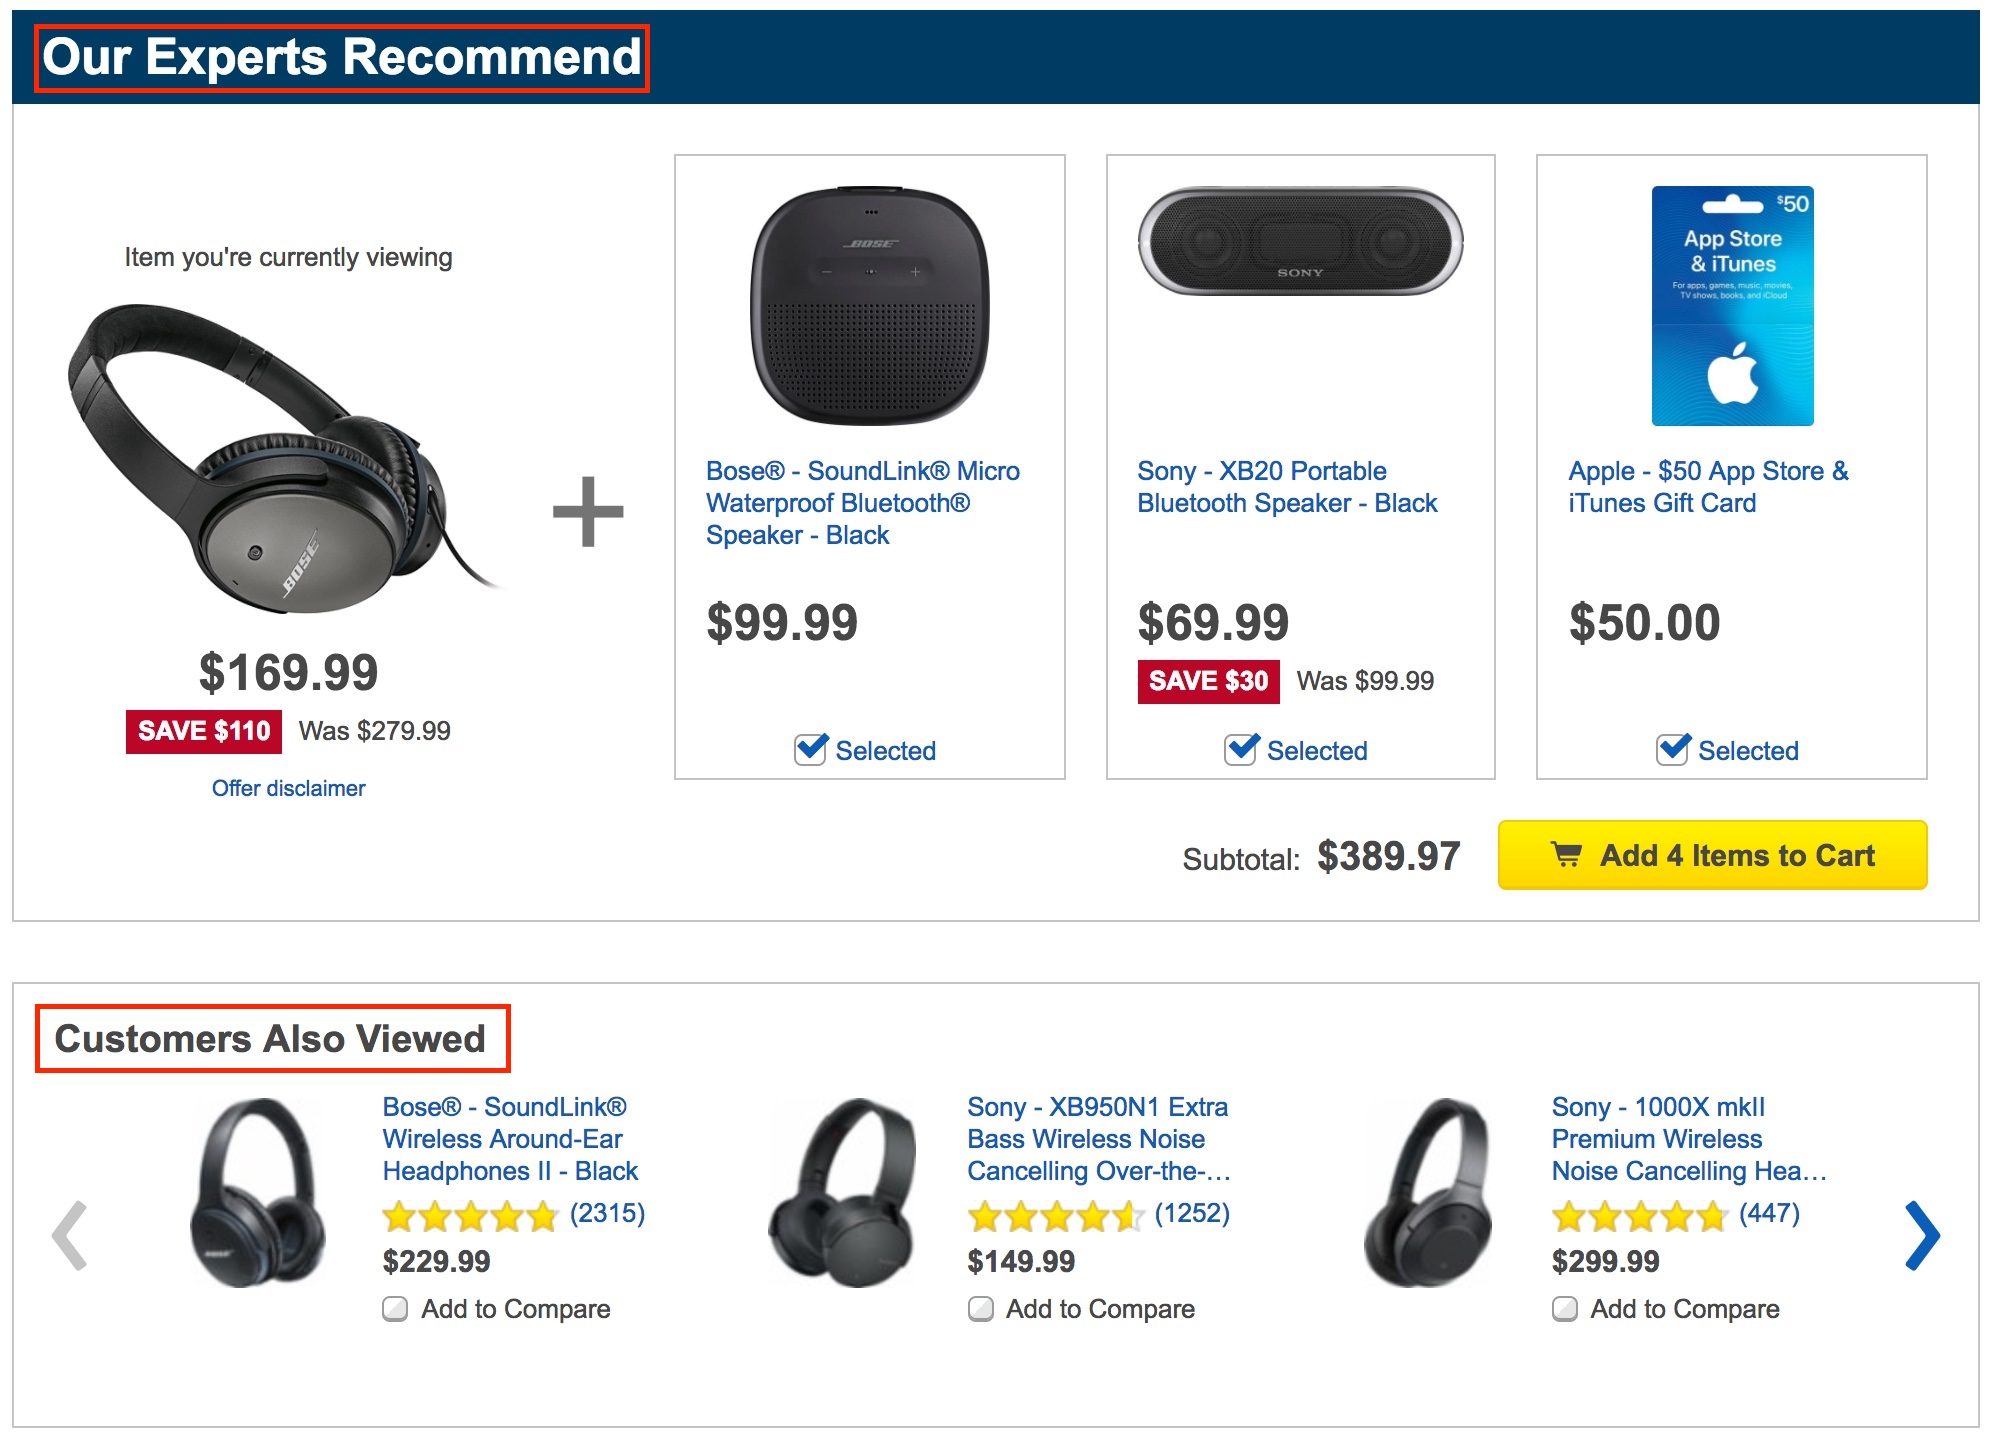 Screenshot showing recommended products